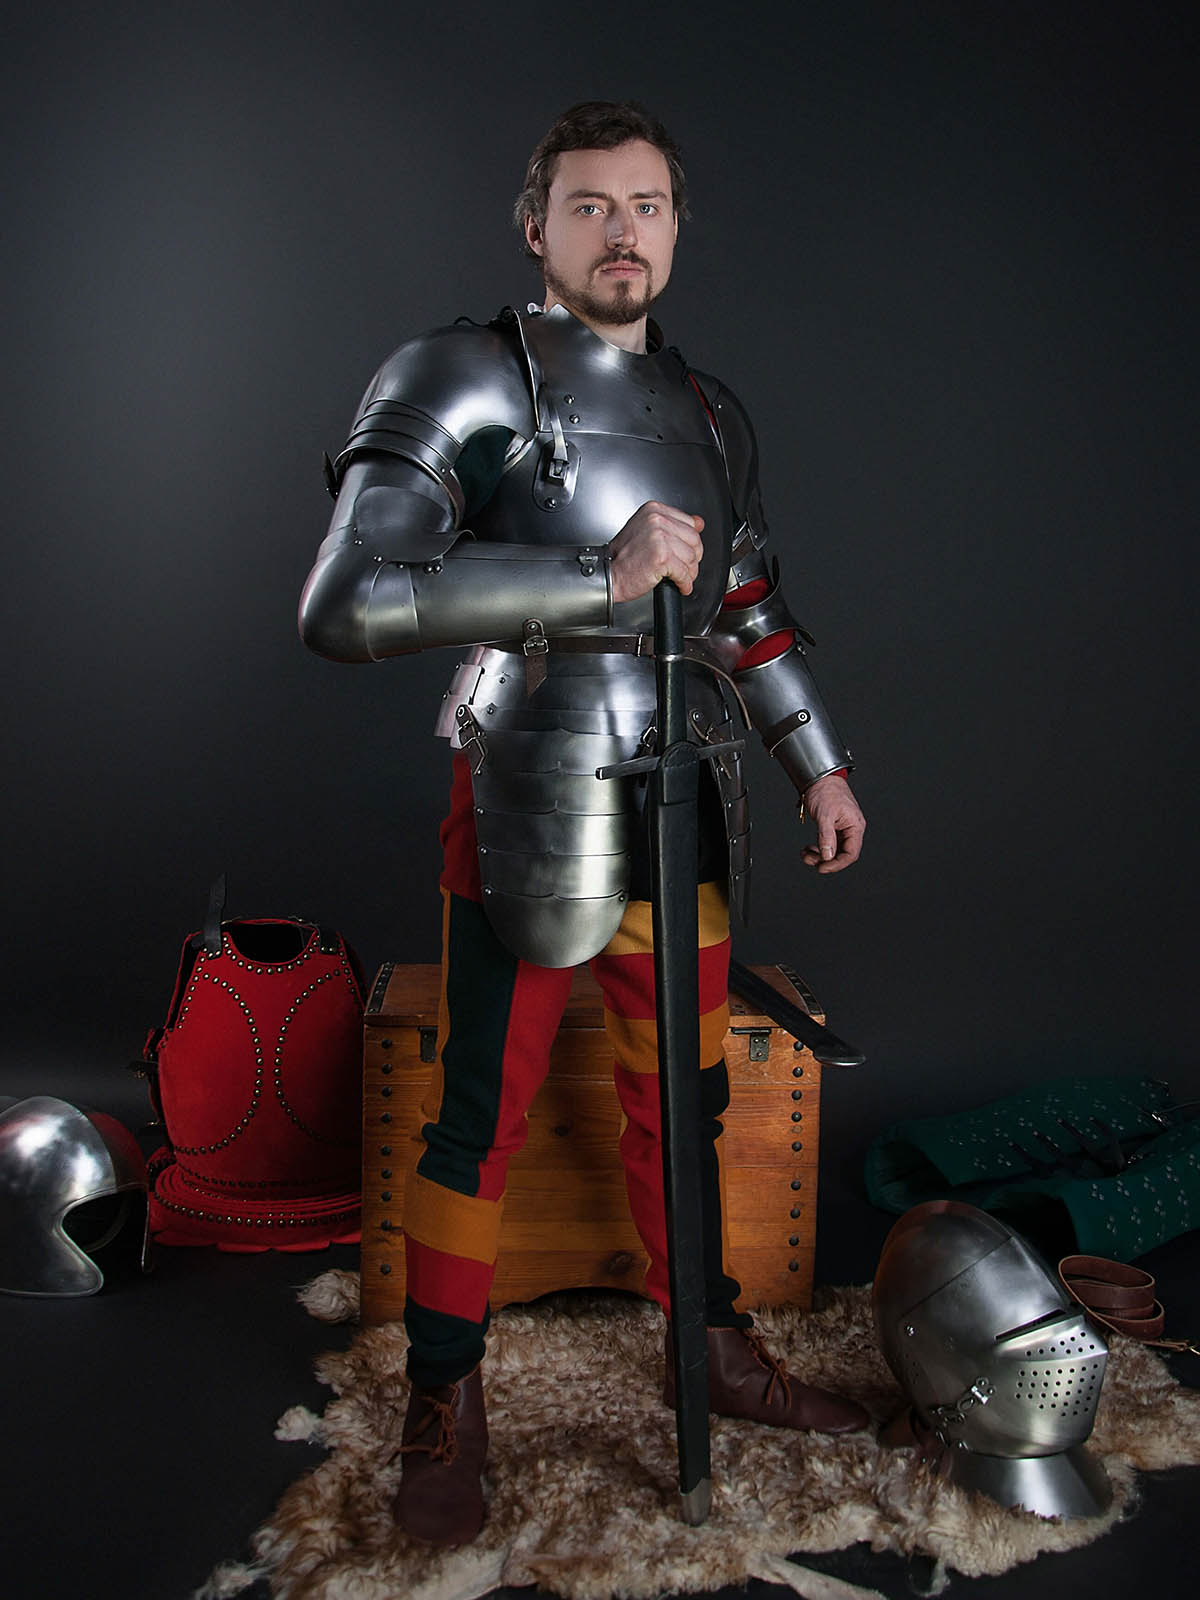 Knight Of Wands As Advice: Full Arm Protection With Pauldron, A Part Of The Jousting